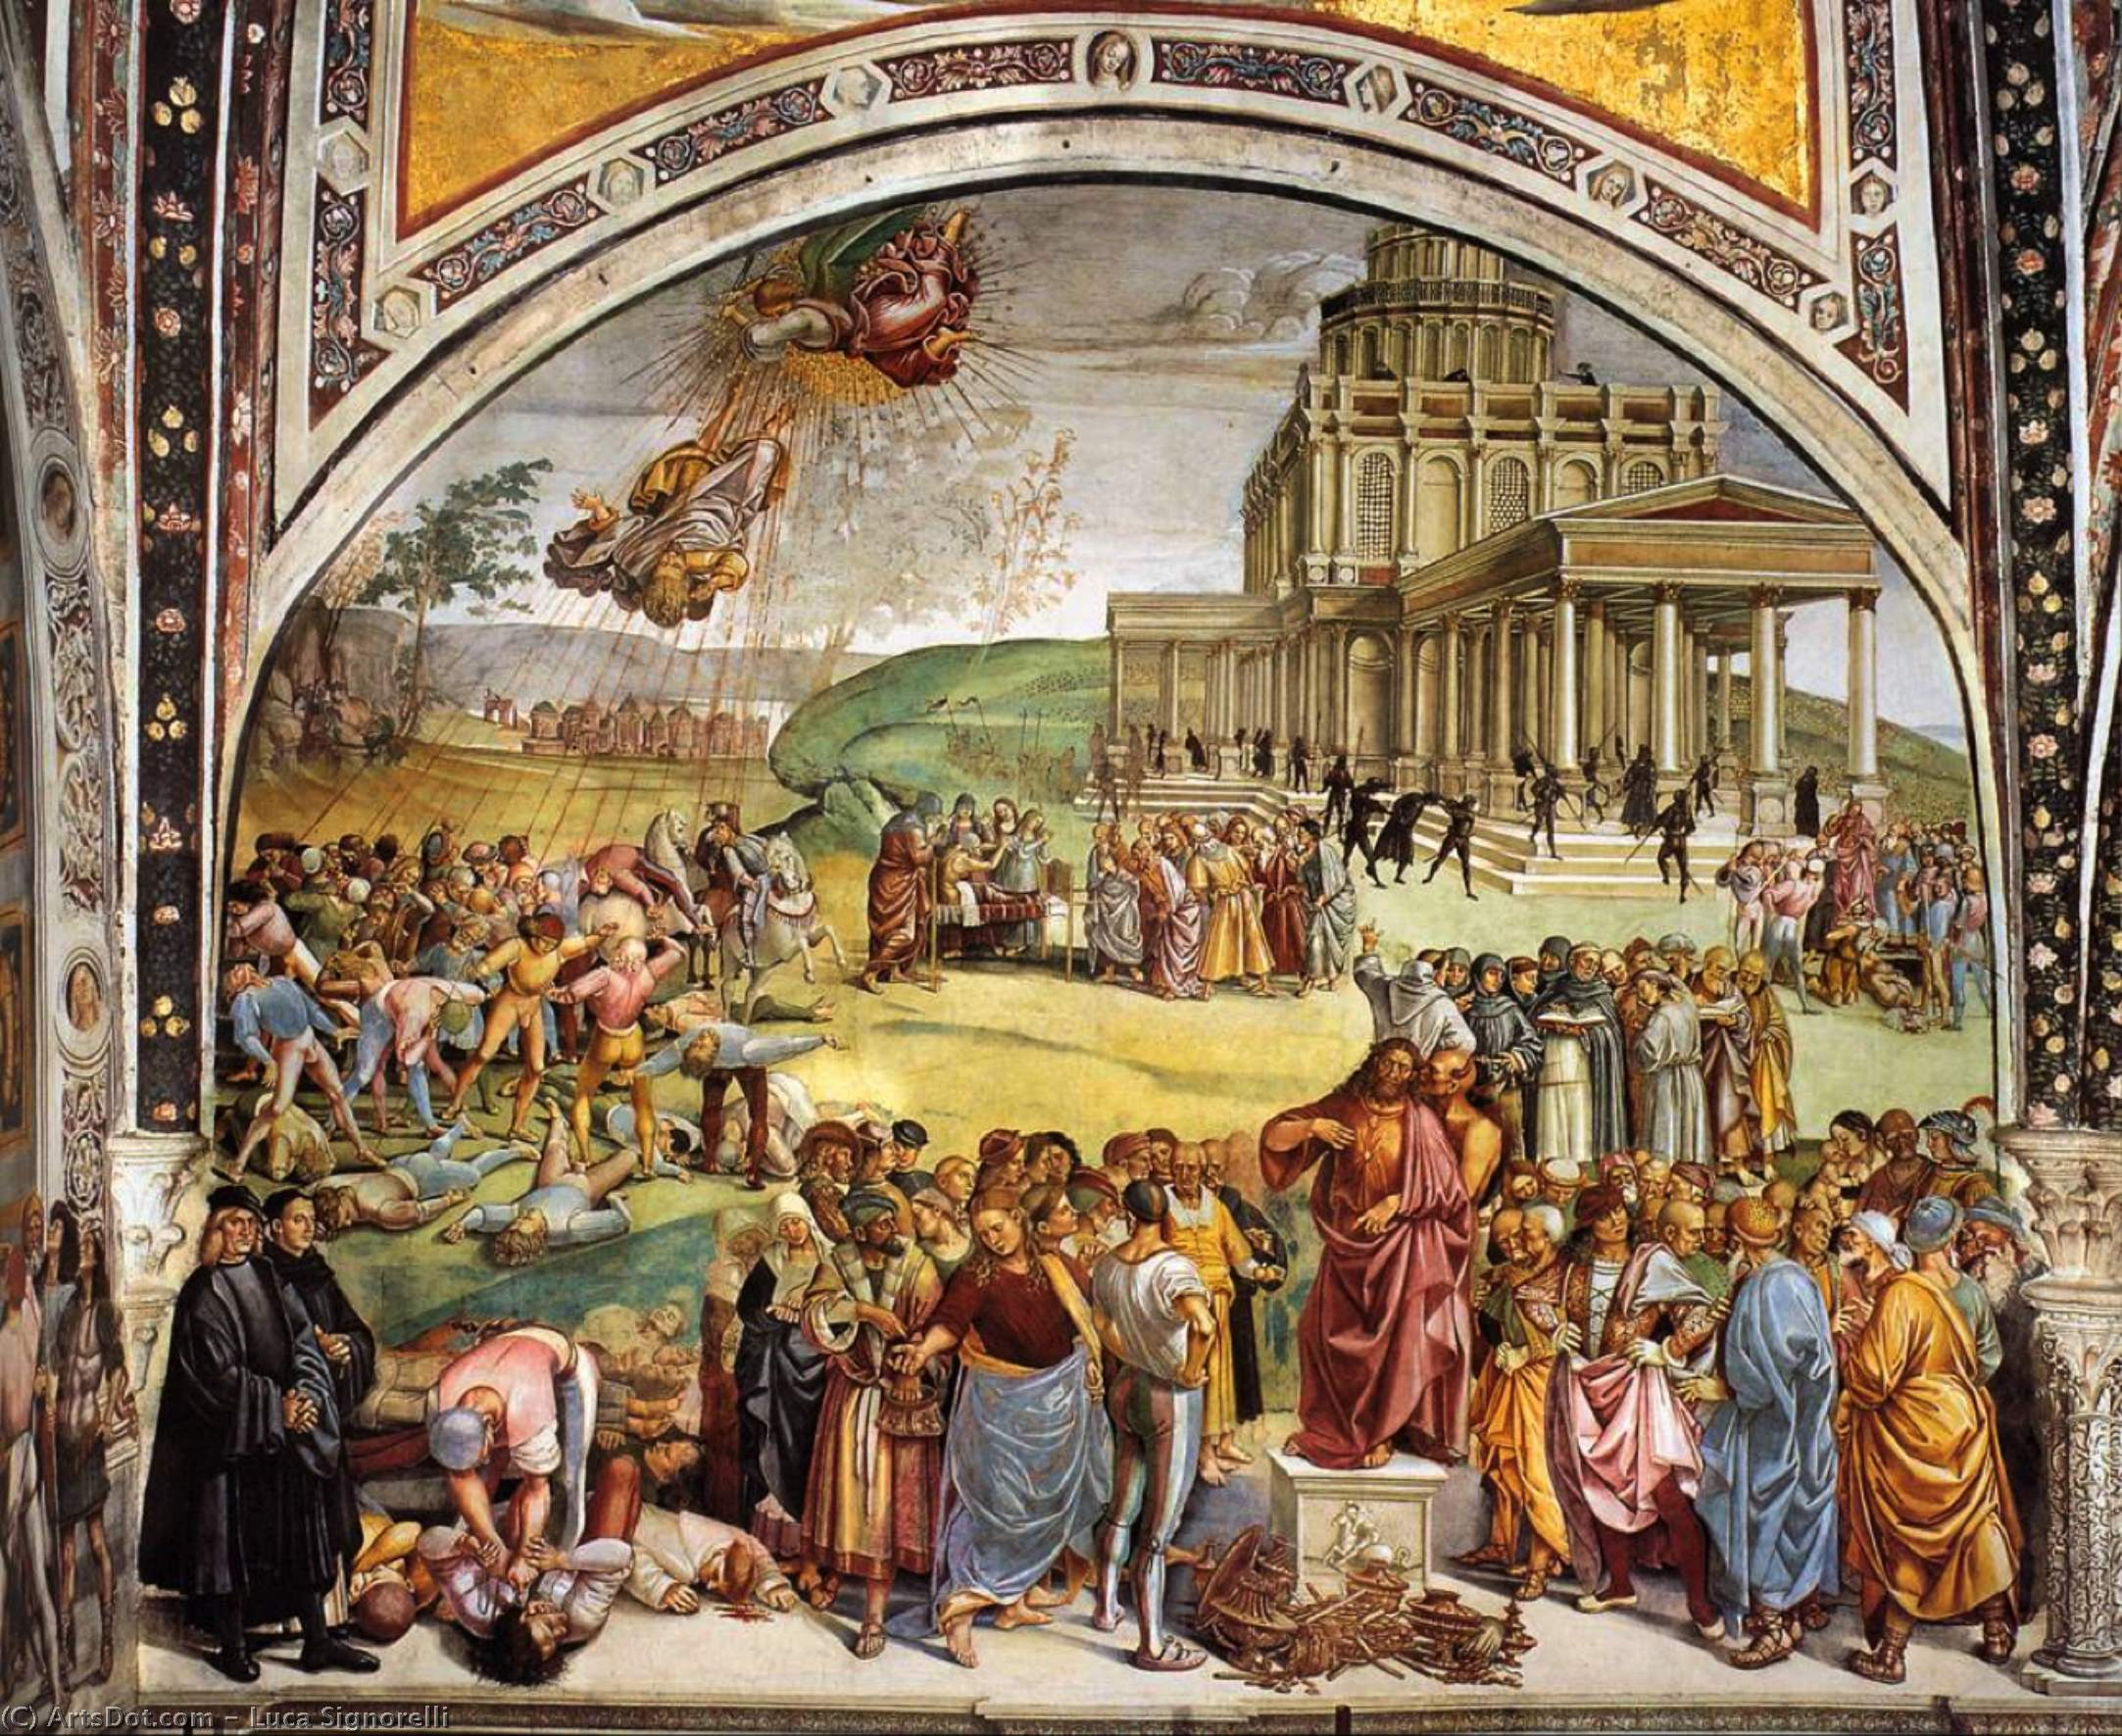 Sermon and Deeds of the Antichrist, Frescoes by Luca Signorelli (1450-1523, Italy)